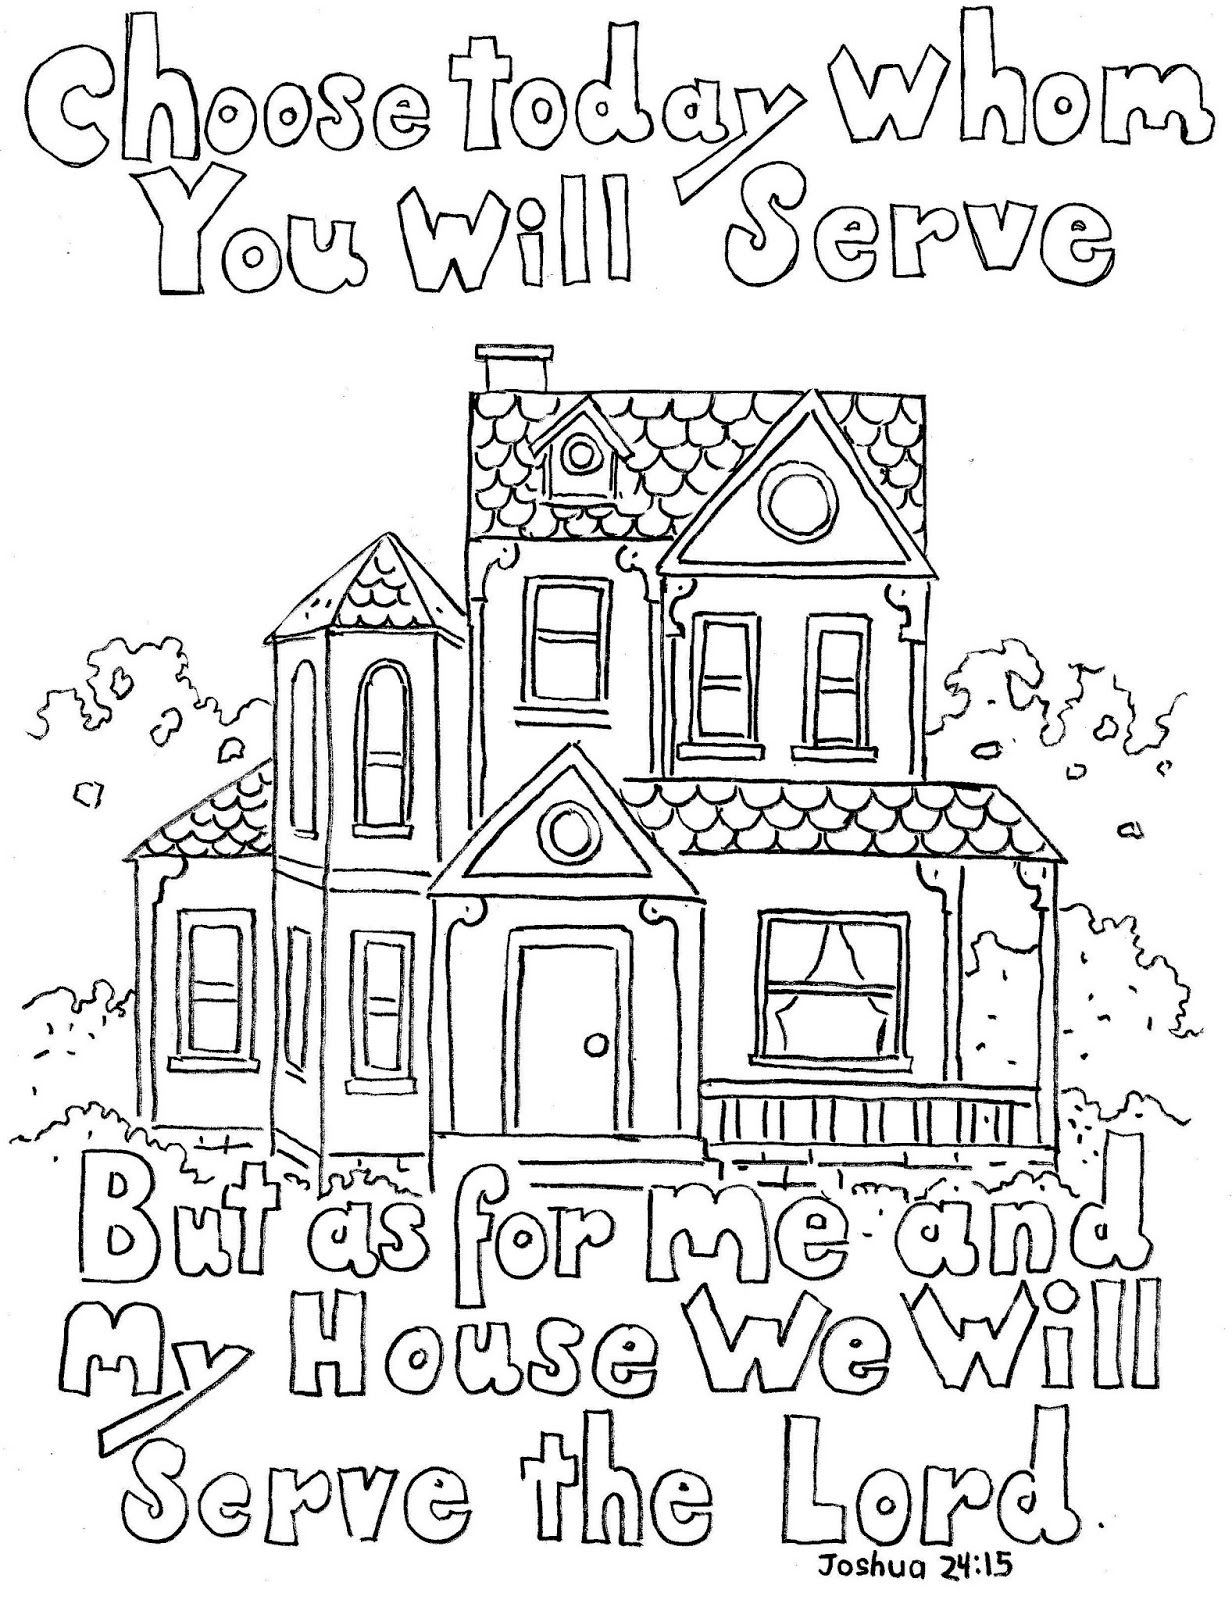 Obey The Lord Coloring Page | Joshua 24:15 Print And Color